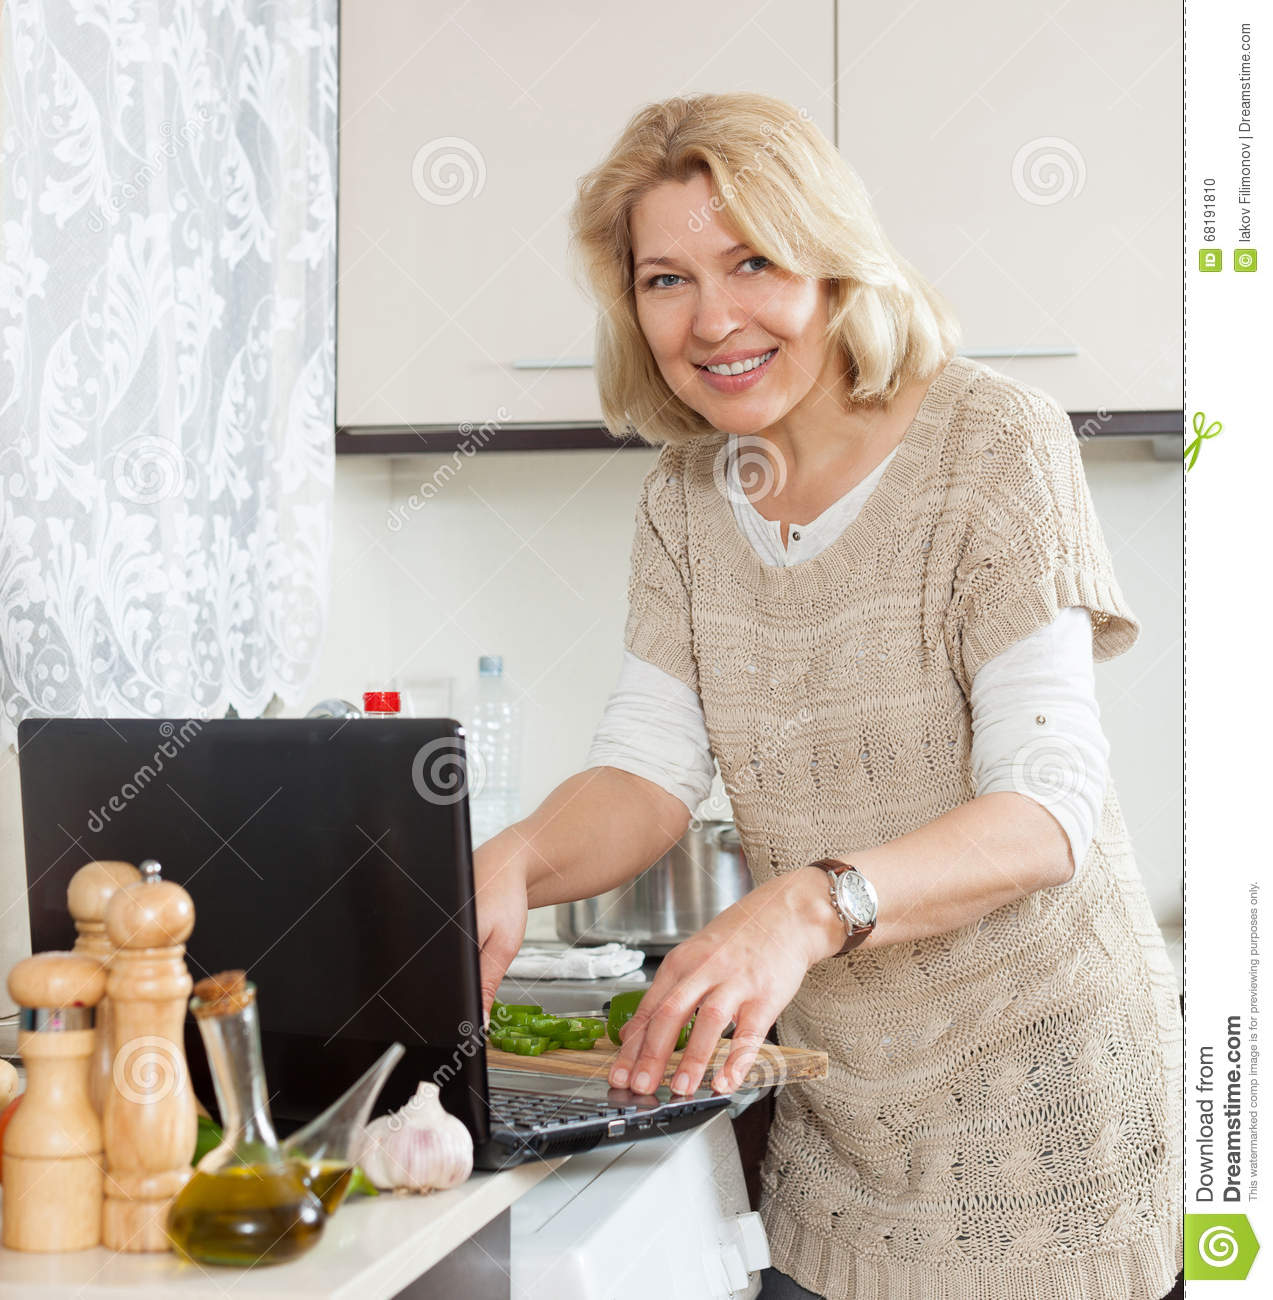 Was specially blonde in kitchen mature with you